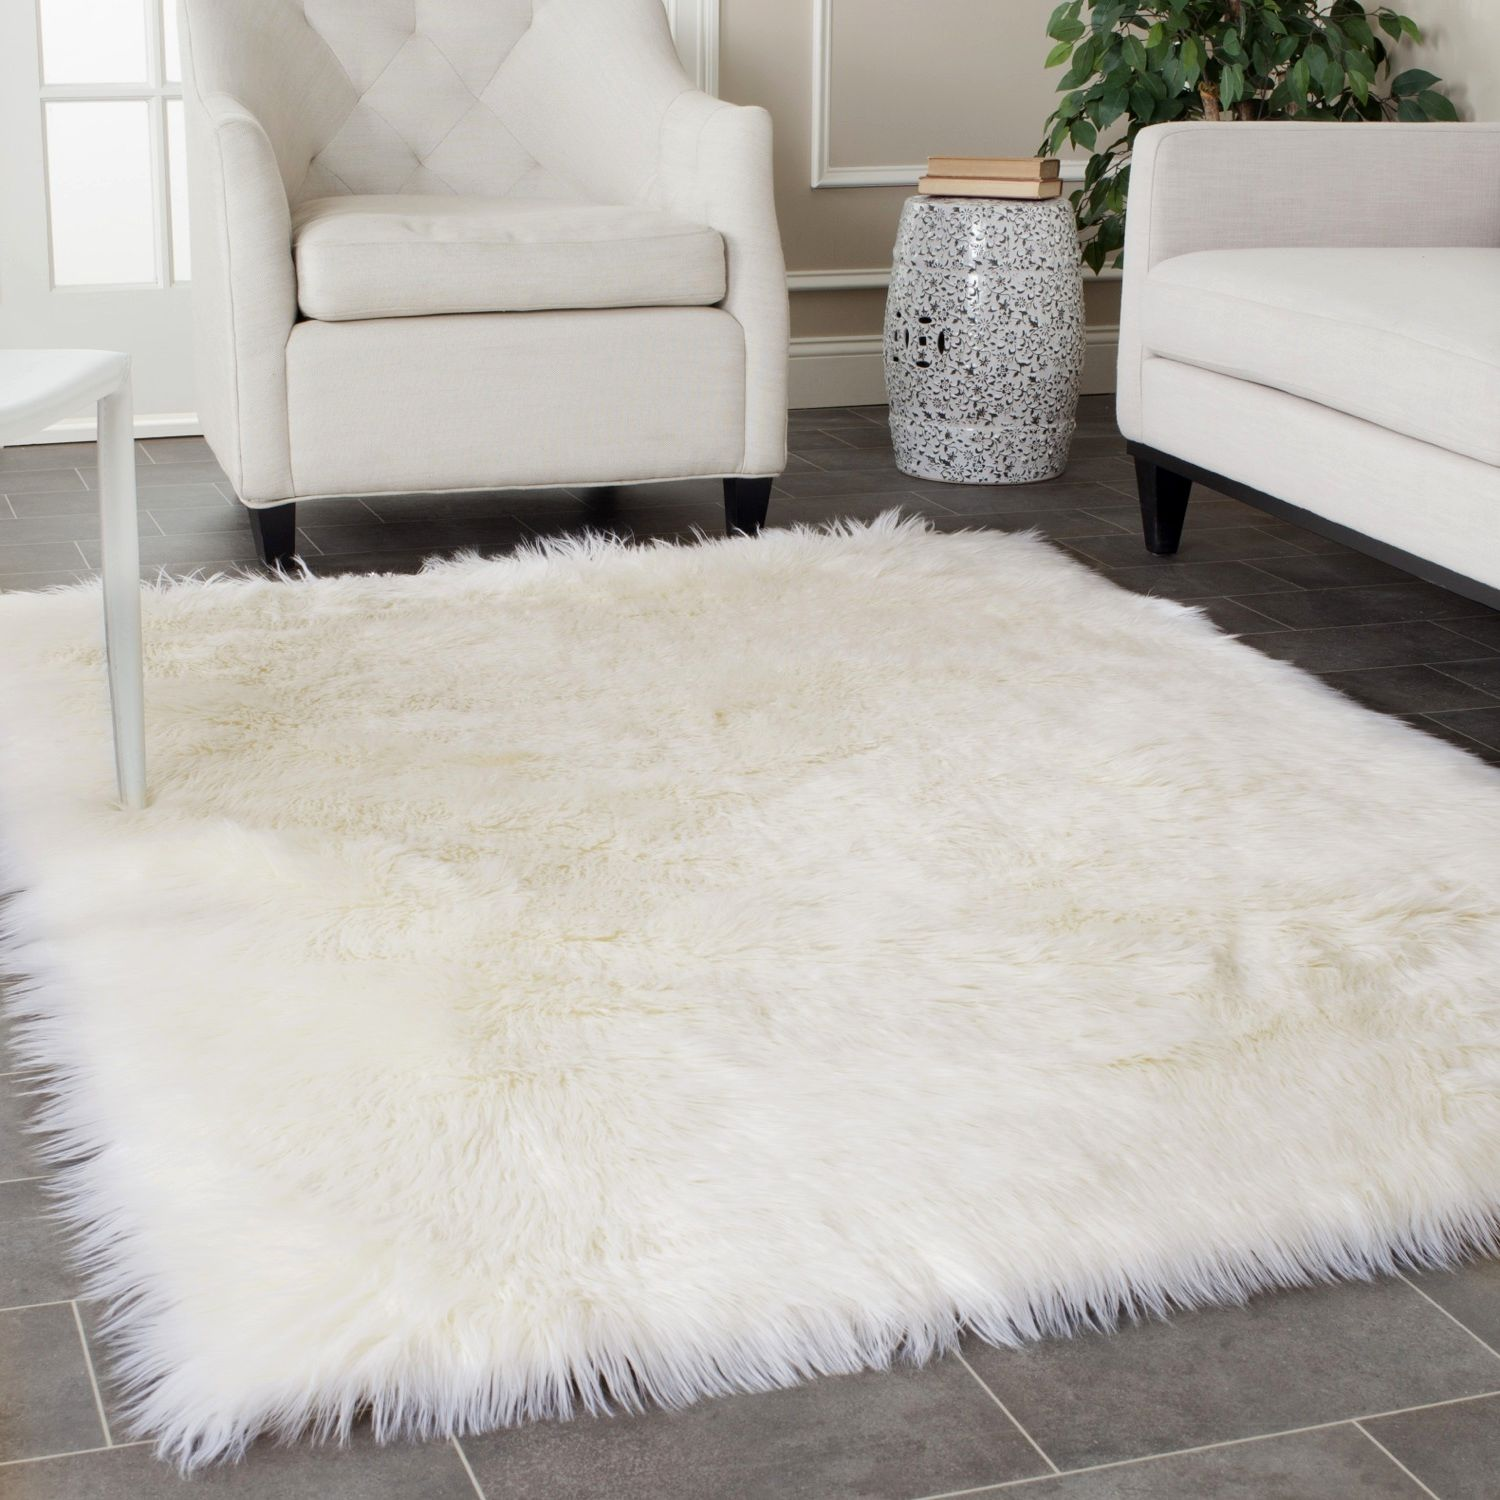 lovely fluffy bathroom rugs design-Awesome Fluffy Bathroom Rugs Collection